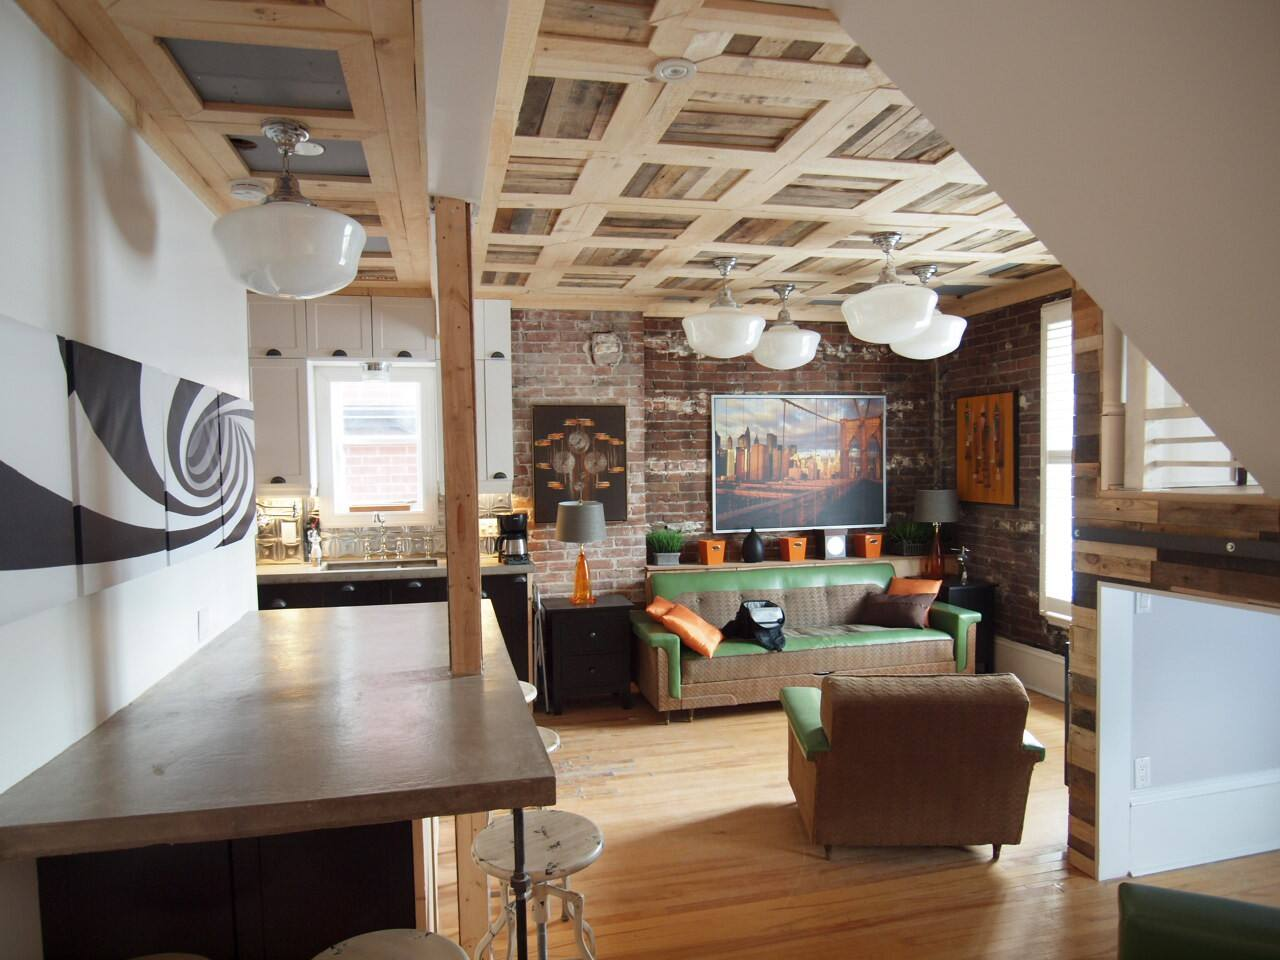 2 story NYC-style loft in downtown Ottawa with sleeping accommodations for 7 people.